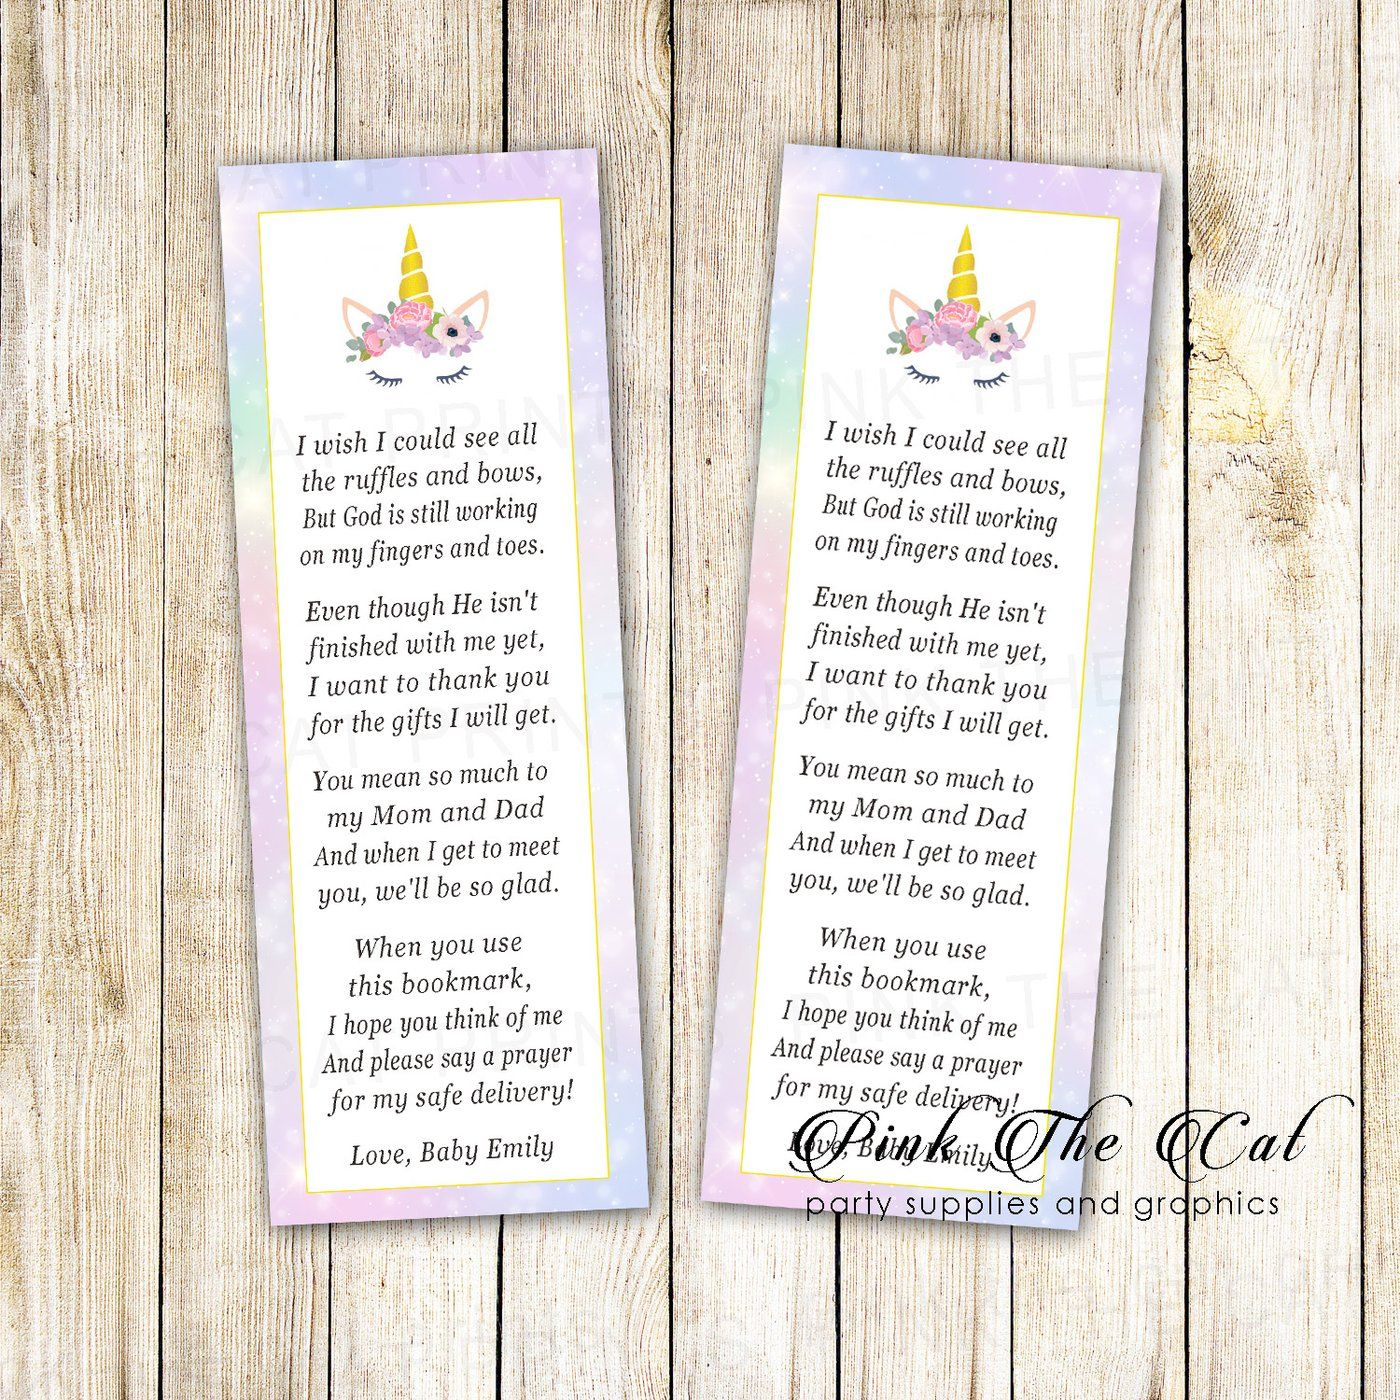 Baby Girl Shower Bookmarks Printable Baby Shower Favors For Girls Girl Shower Bookmark Personalized Bookmark for Baby Shower Favor Ideas